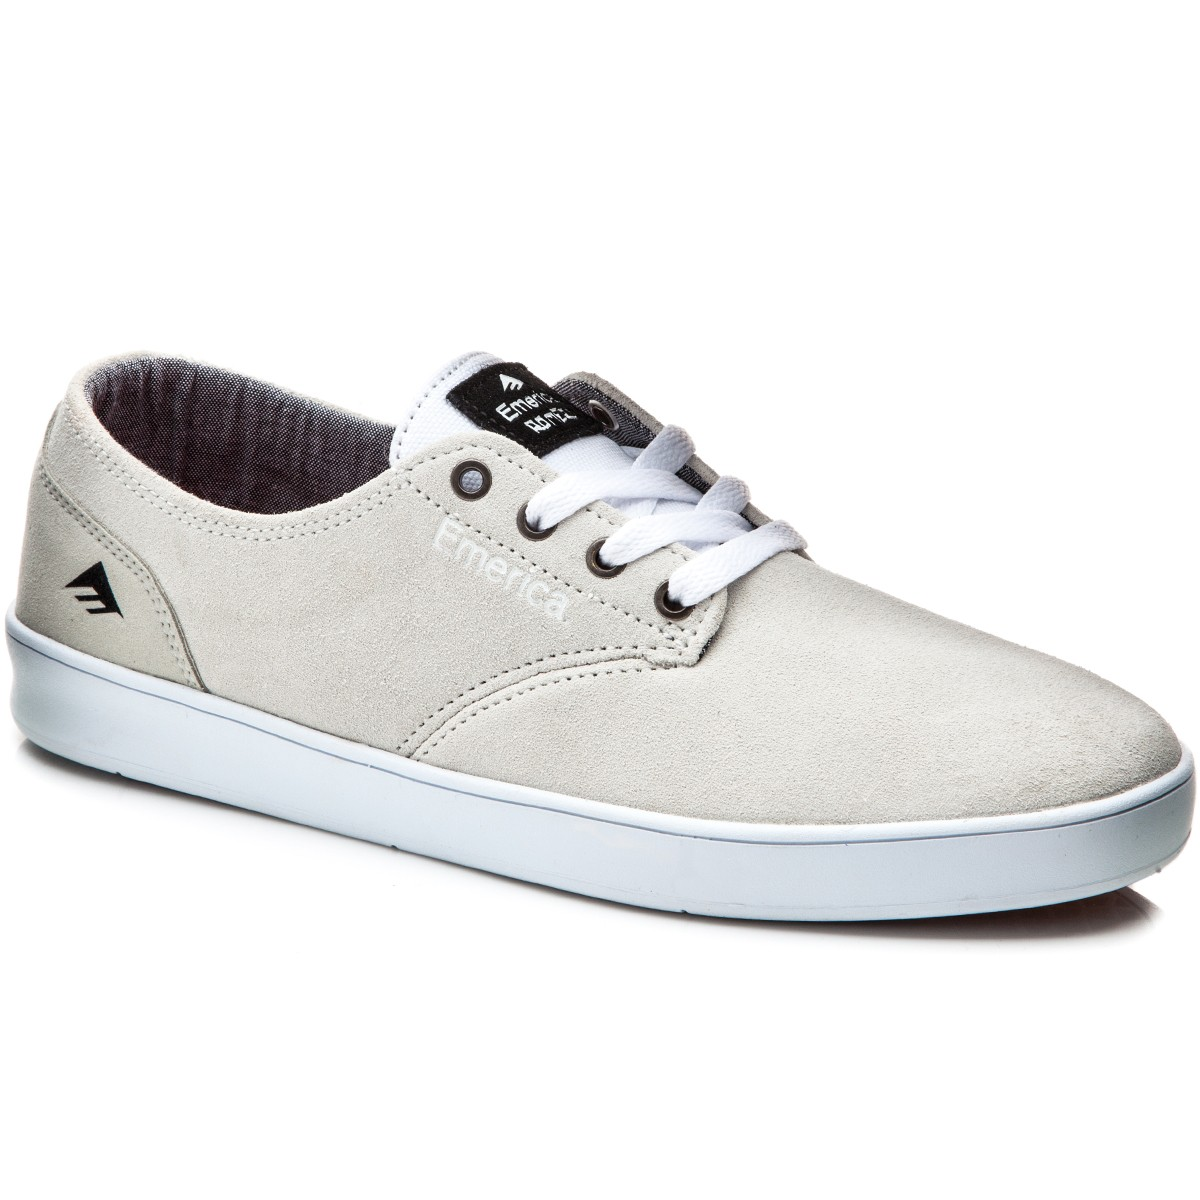 Emerica Shoes The Laced Romero